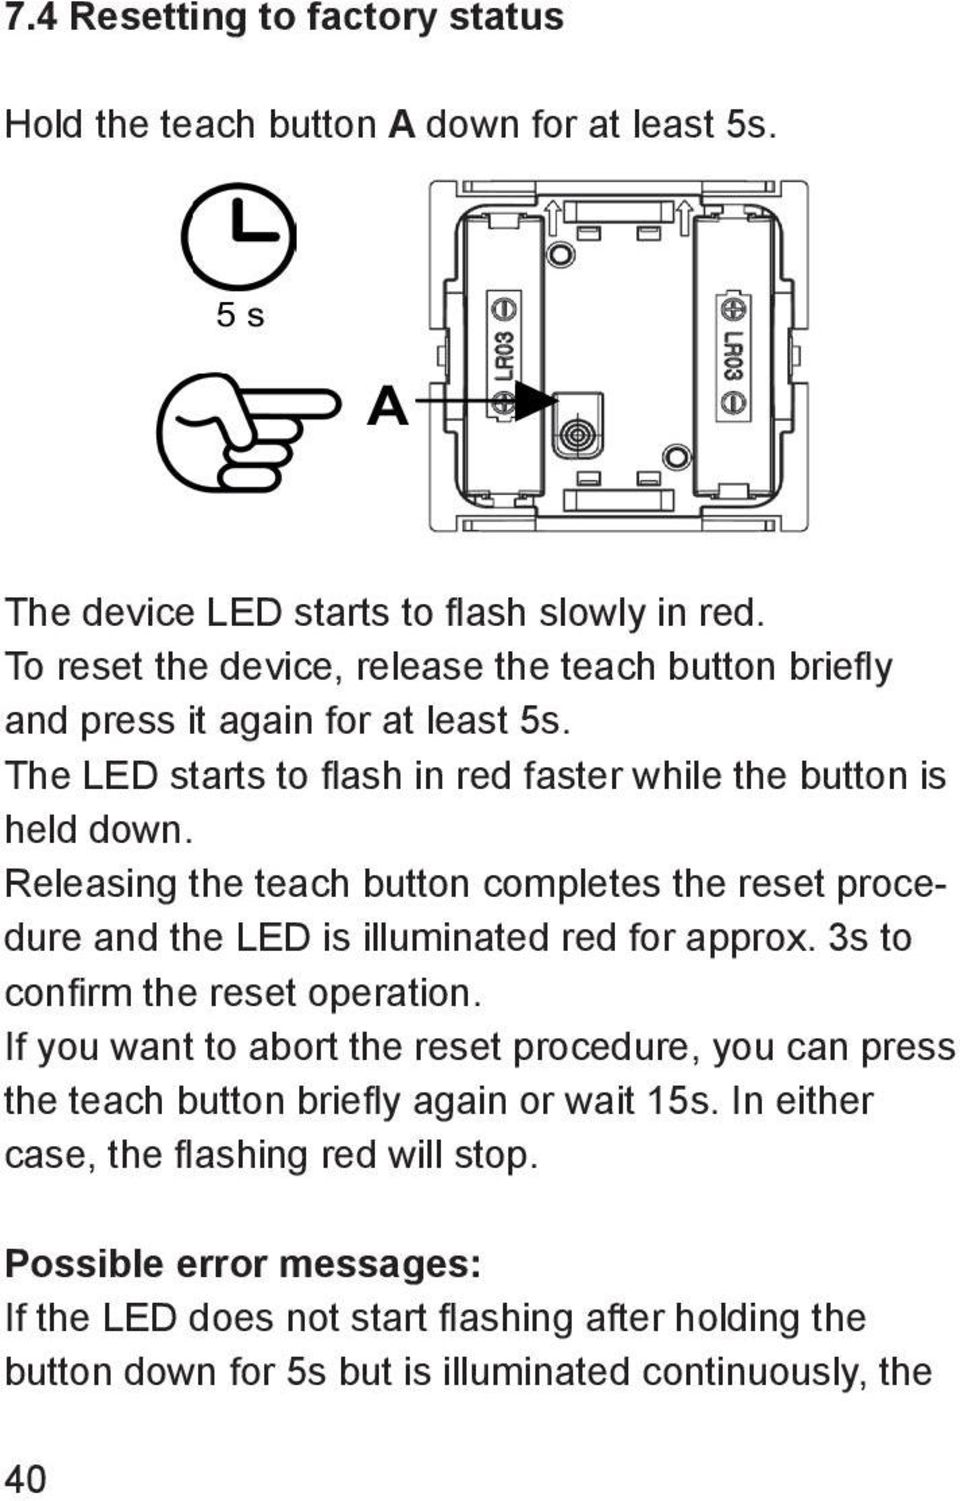 Releasing the teach button completes the reset procedure and the LED is illuminated red for approx. 3s to confirm the reset operation.